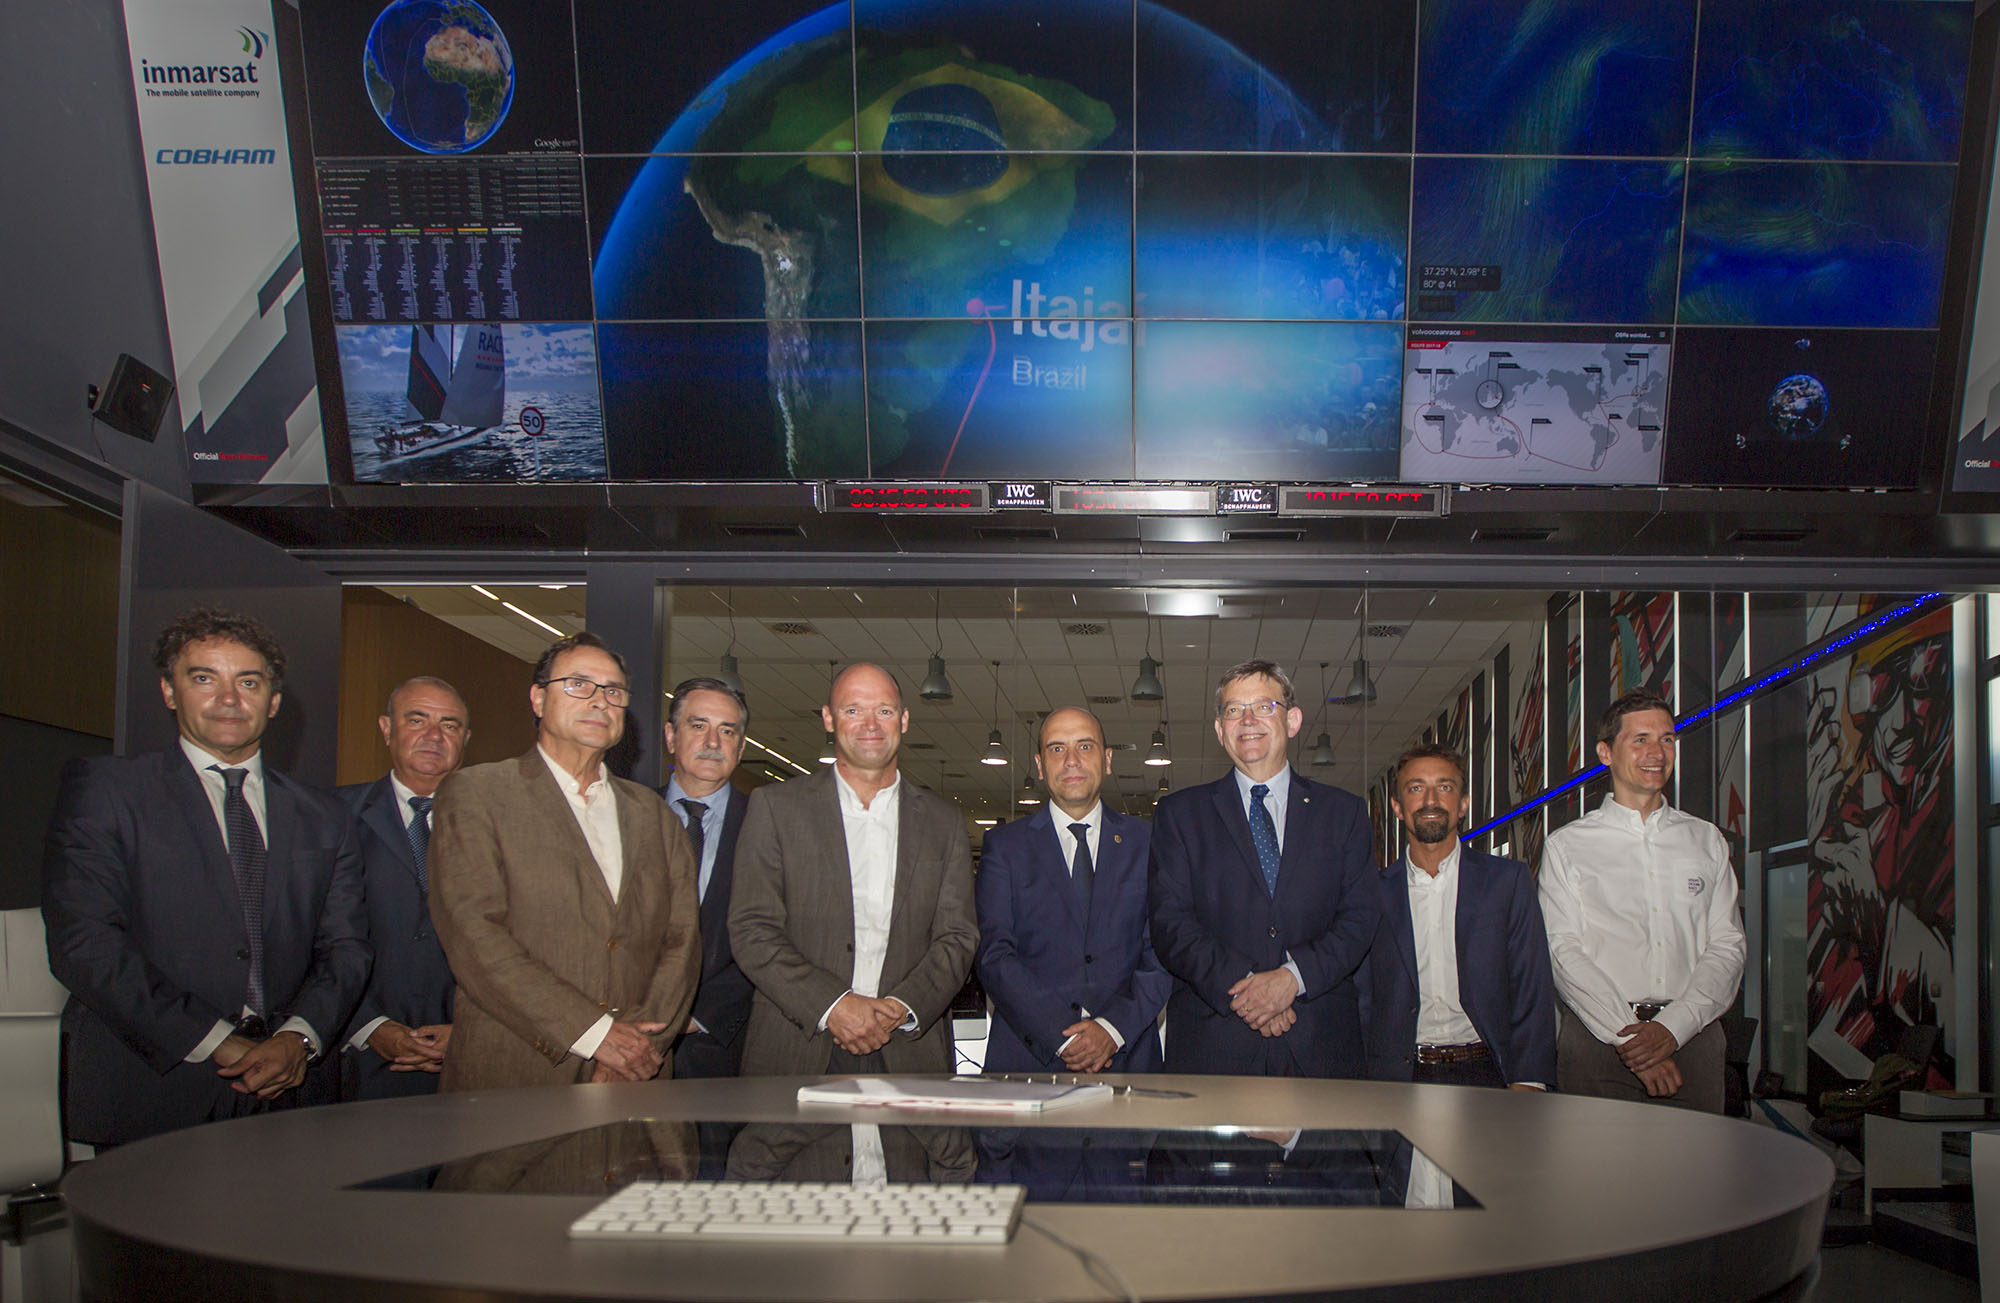 Alicante, July 19, 2016 - Volvo Ocean Race signed an agreement with the Generalitat Valenciana to remain in Alicante for two more editions of the Volvo Ocean Race after 2017-18. The status of host city and headquarters of the Volvo Ocean Race organisation